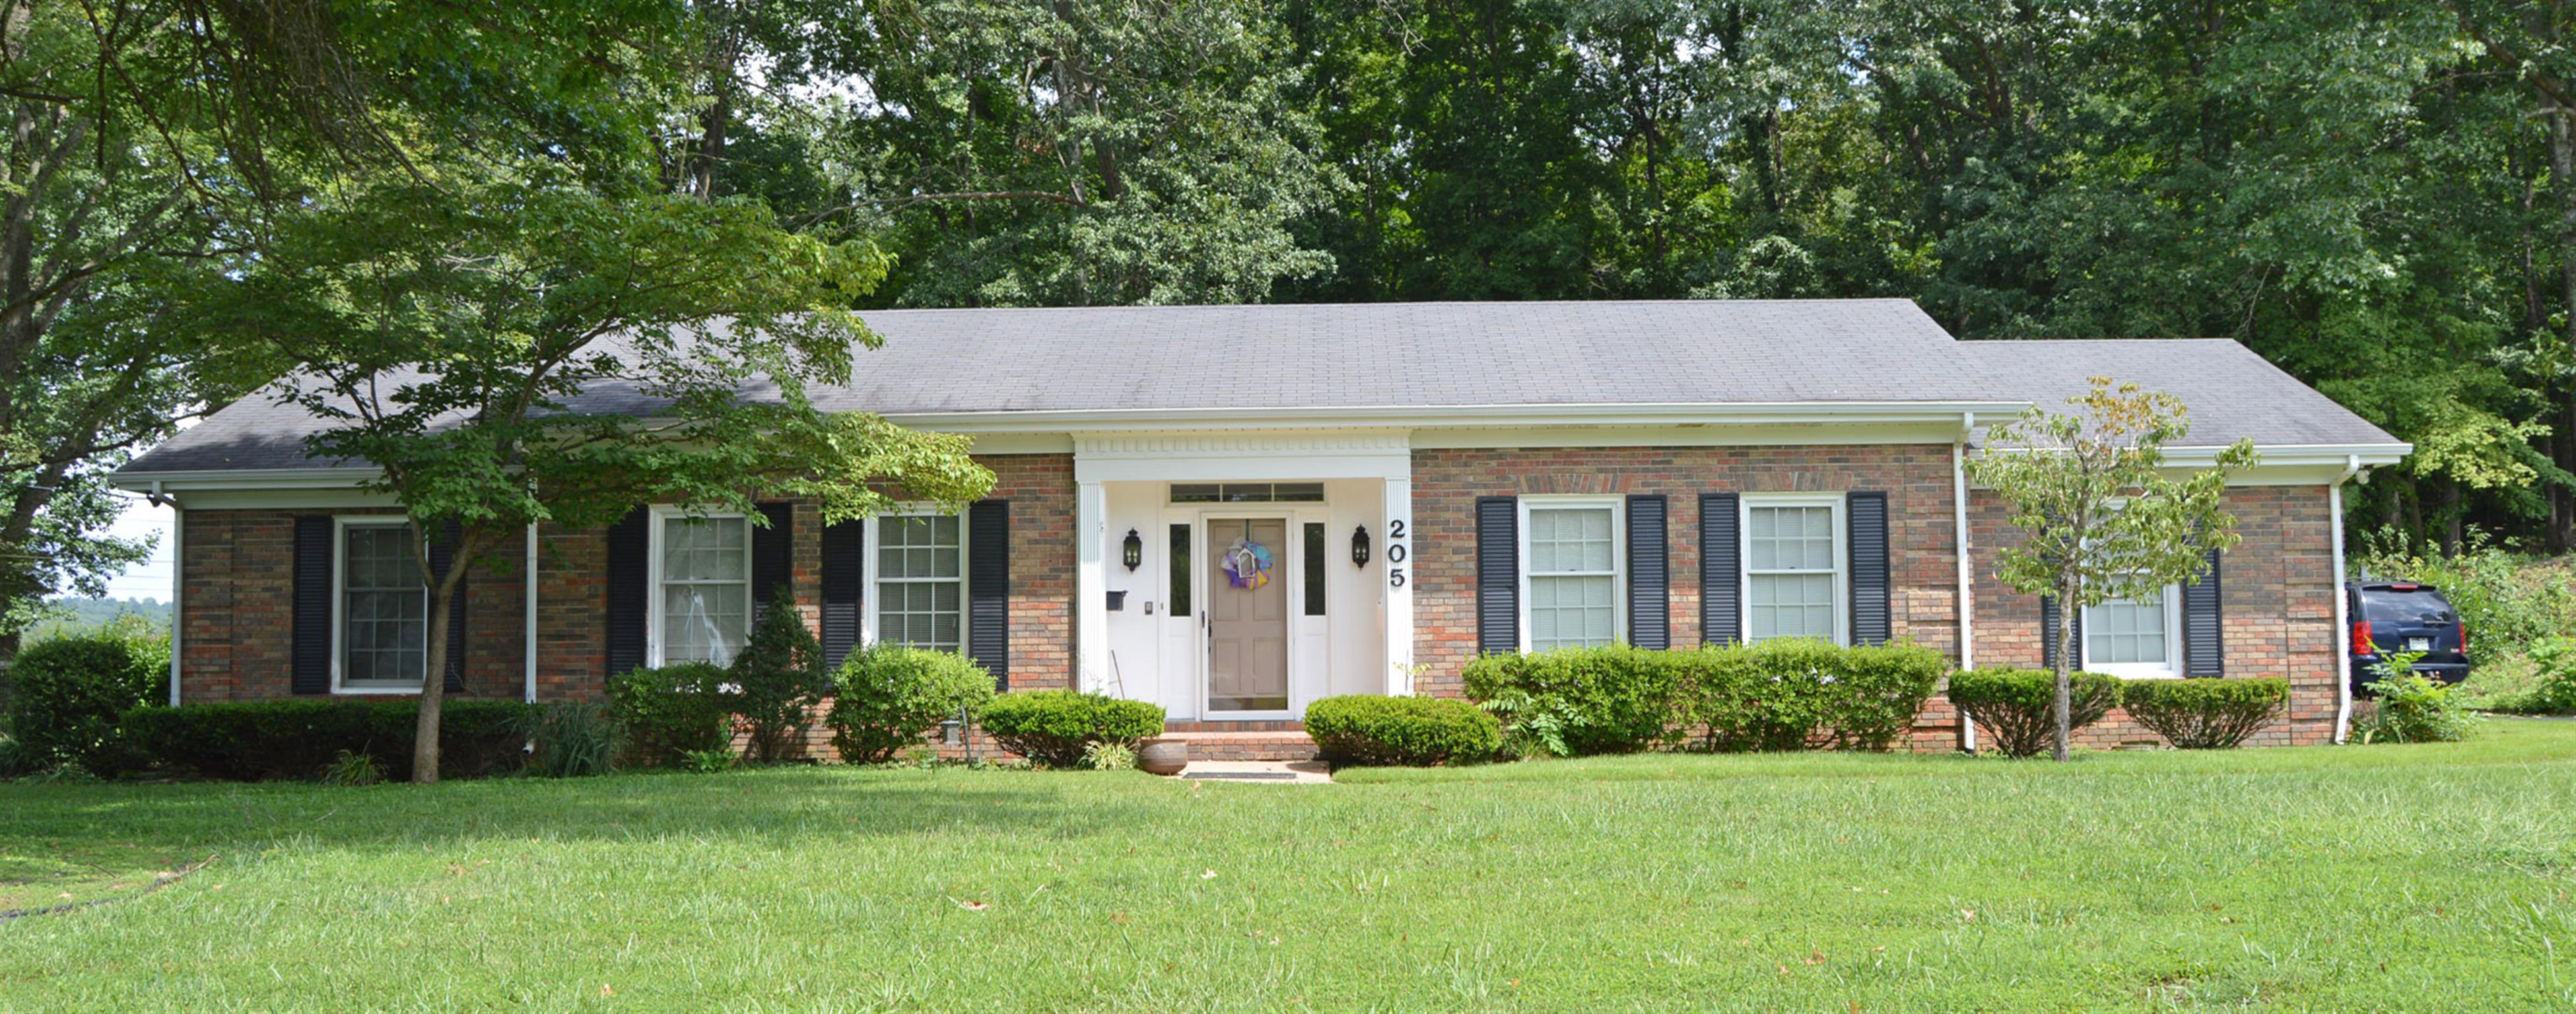 205 DALEVIEW CIRCLE, Russellville, KY 42276 - Russellville, KY real estate listing